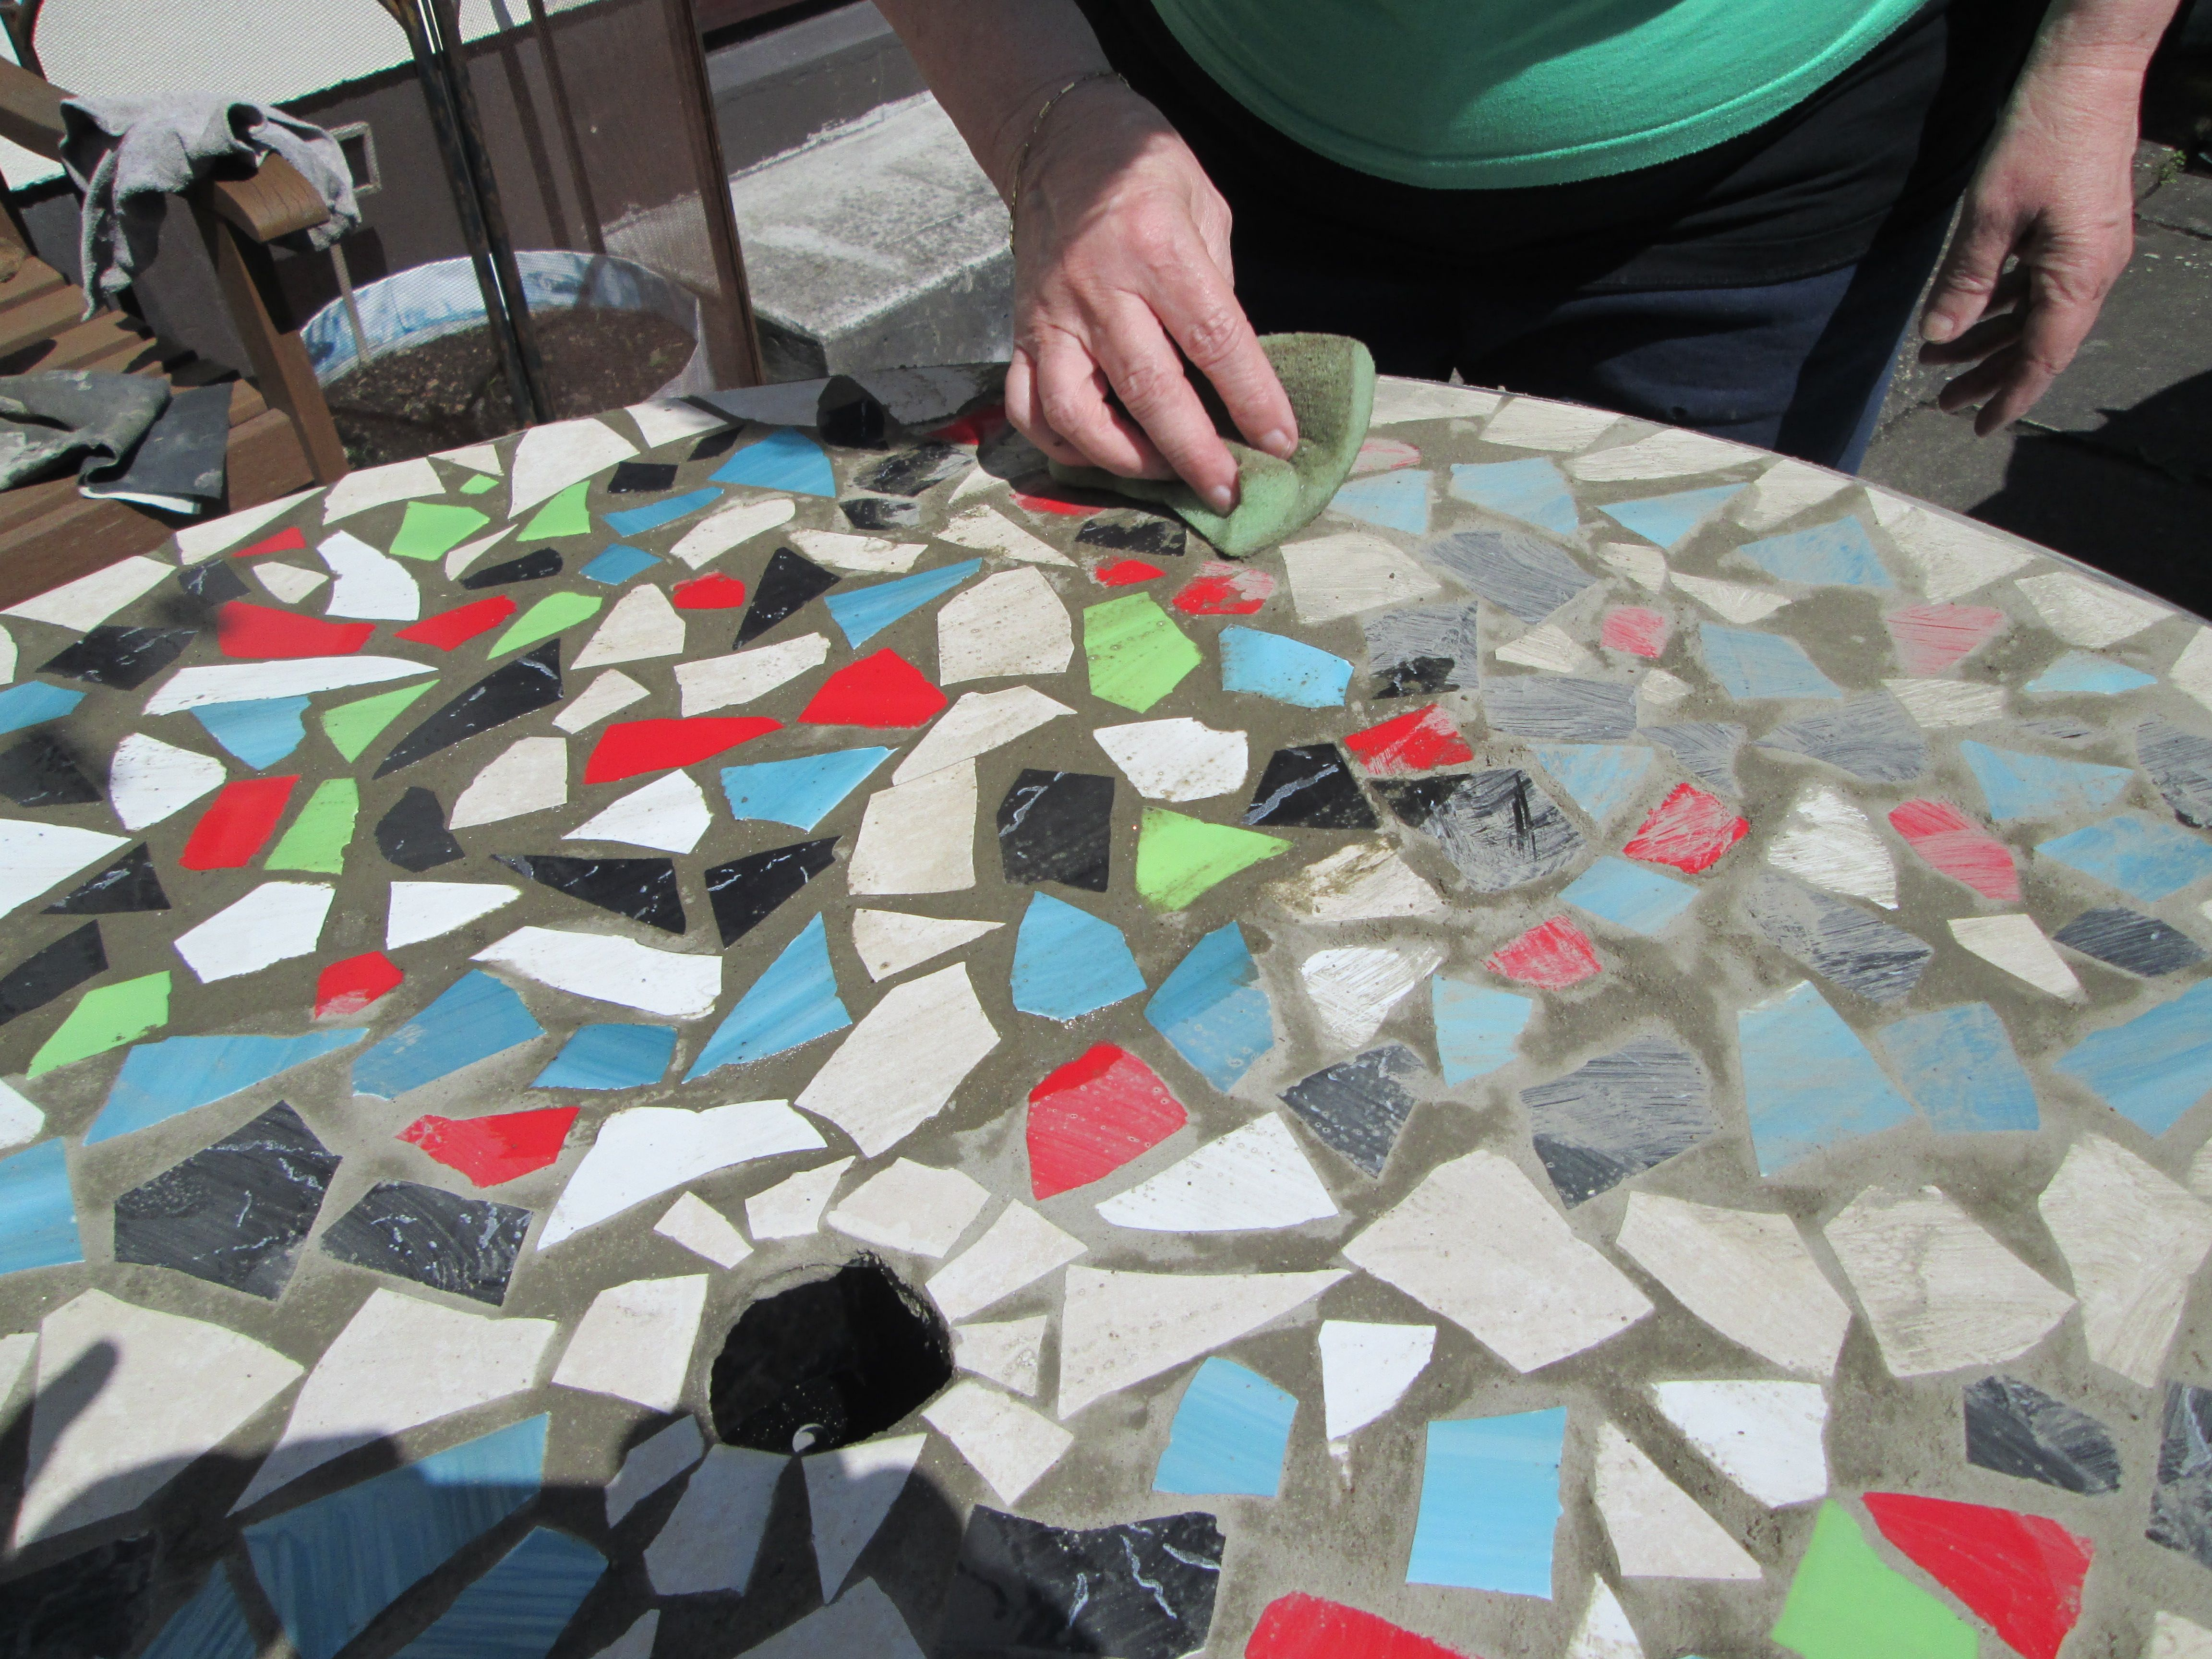 How to design a mosaic tabletop with ceramic tiles mosaics how to design a mosaic tabletop with ceramic tiles dailygadgetfo Choice Image